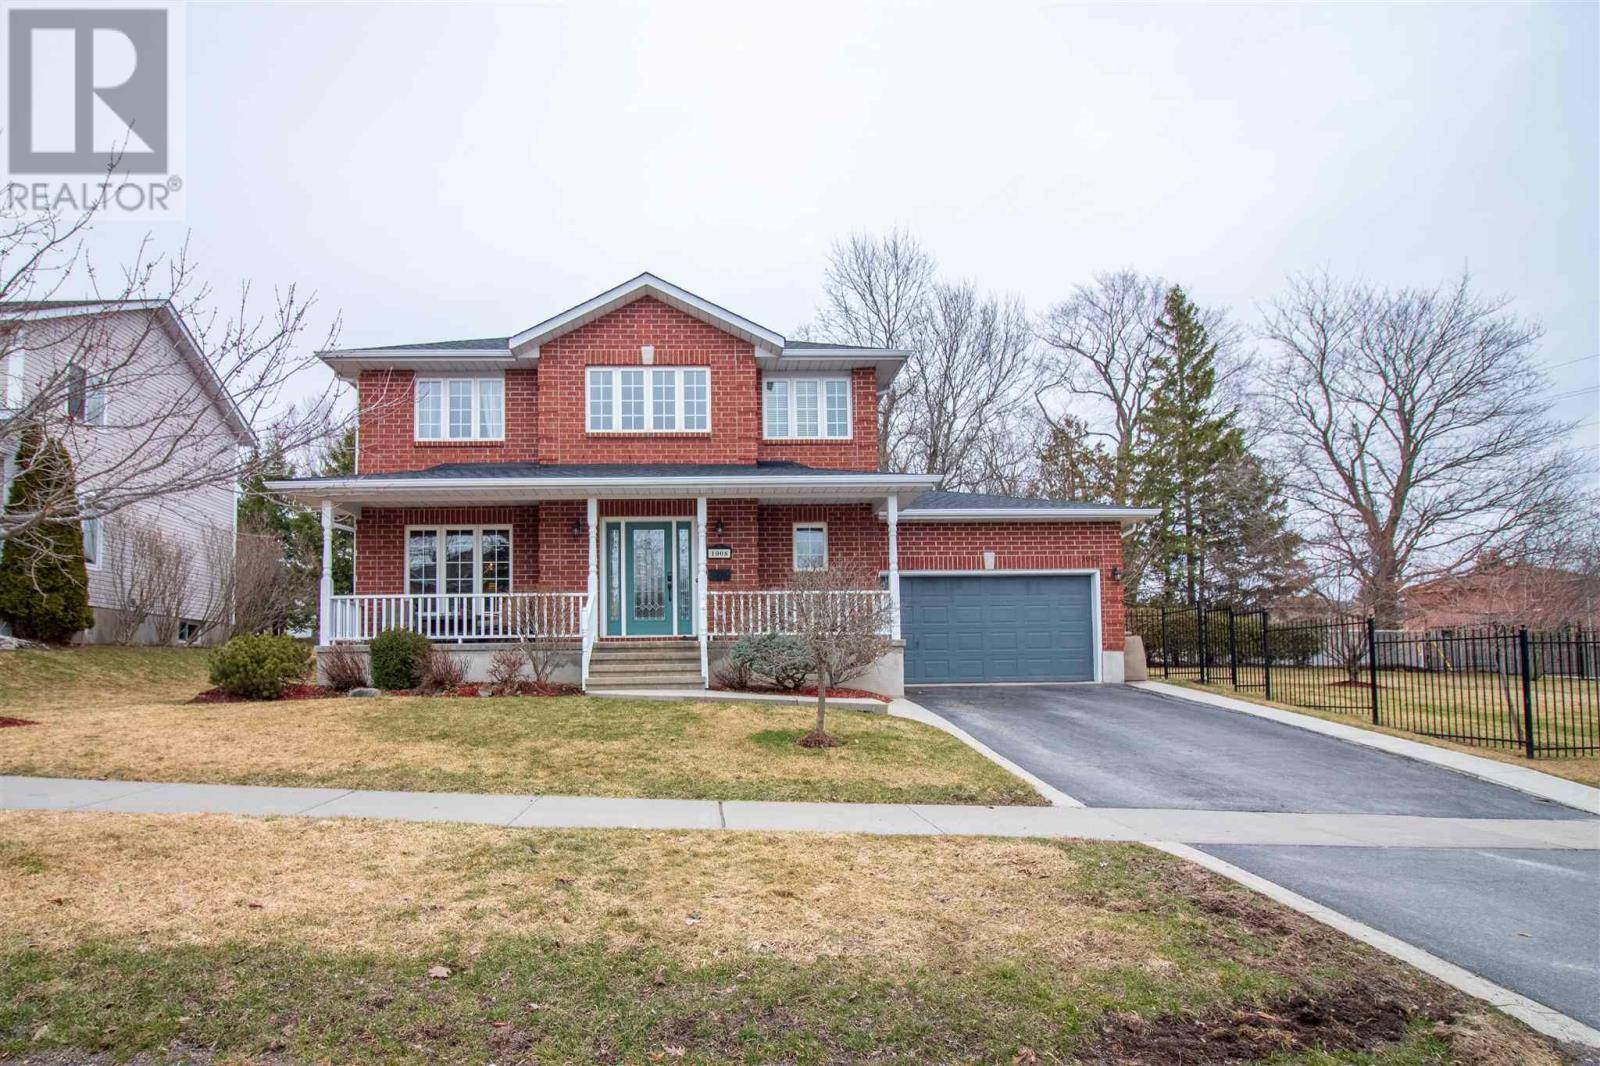 House for sale at 1008 Finch St Kingston Ontario - MLS: K20001676